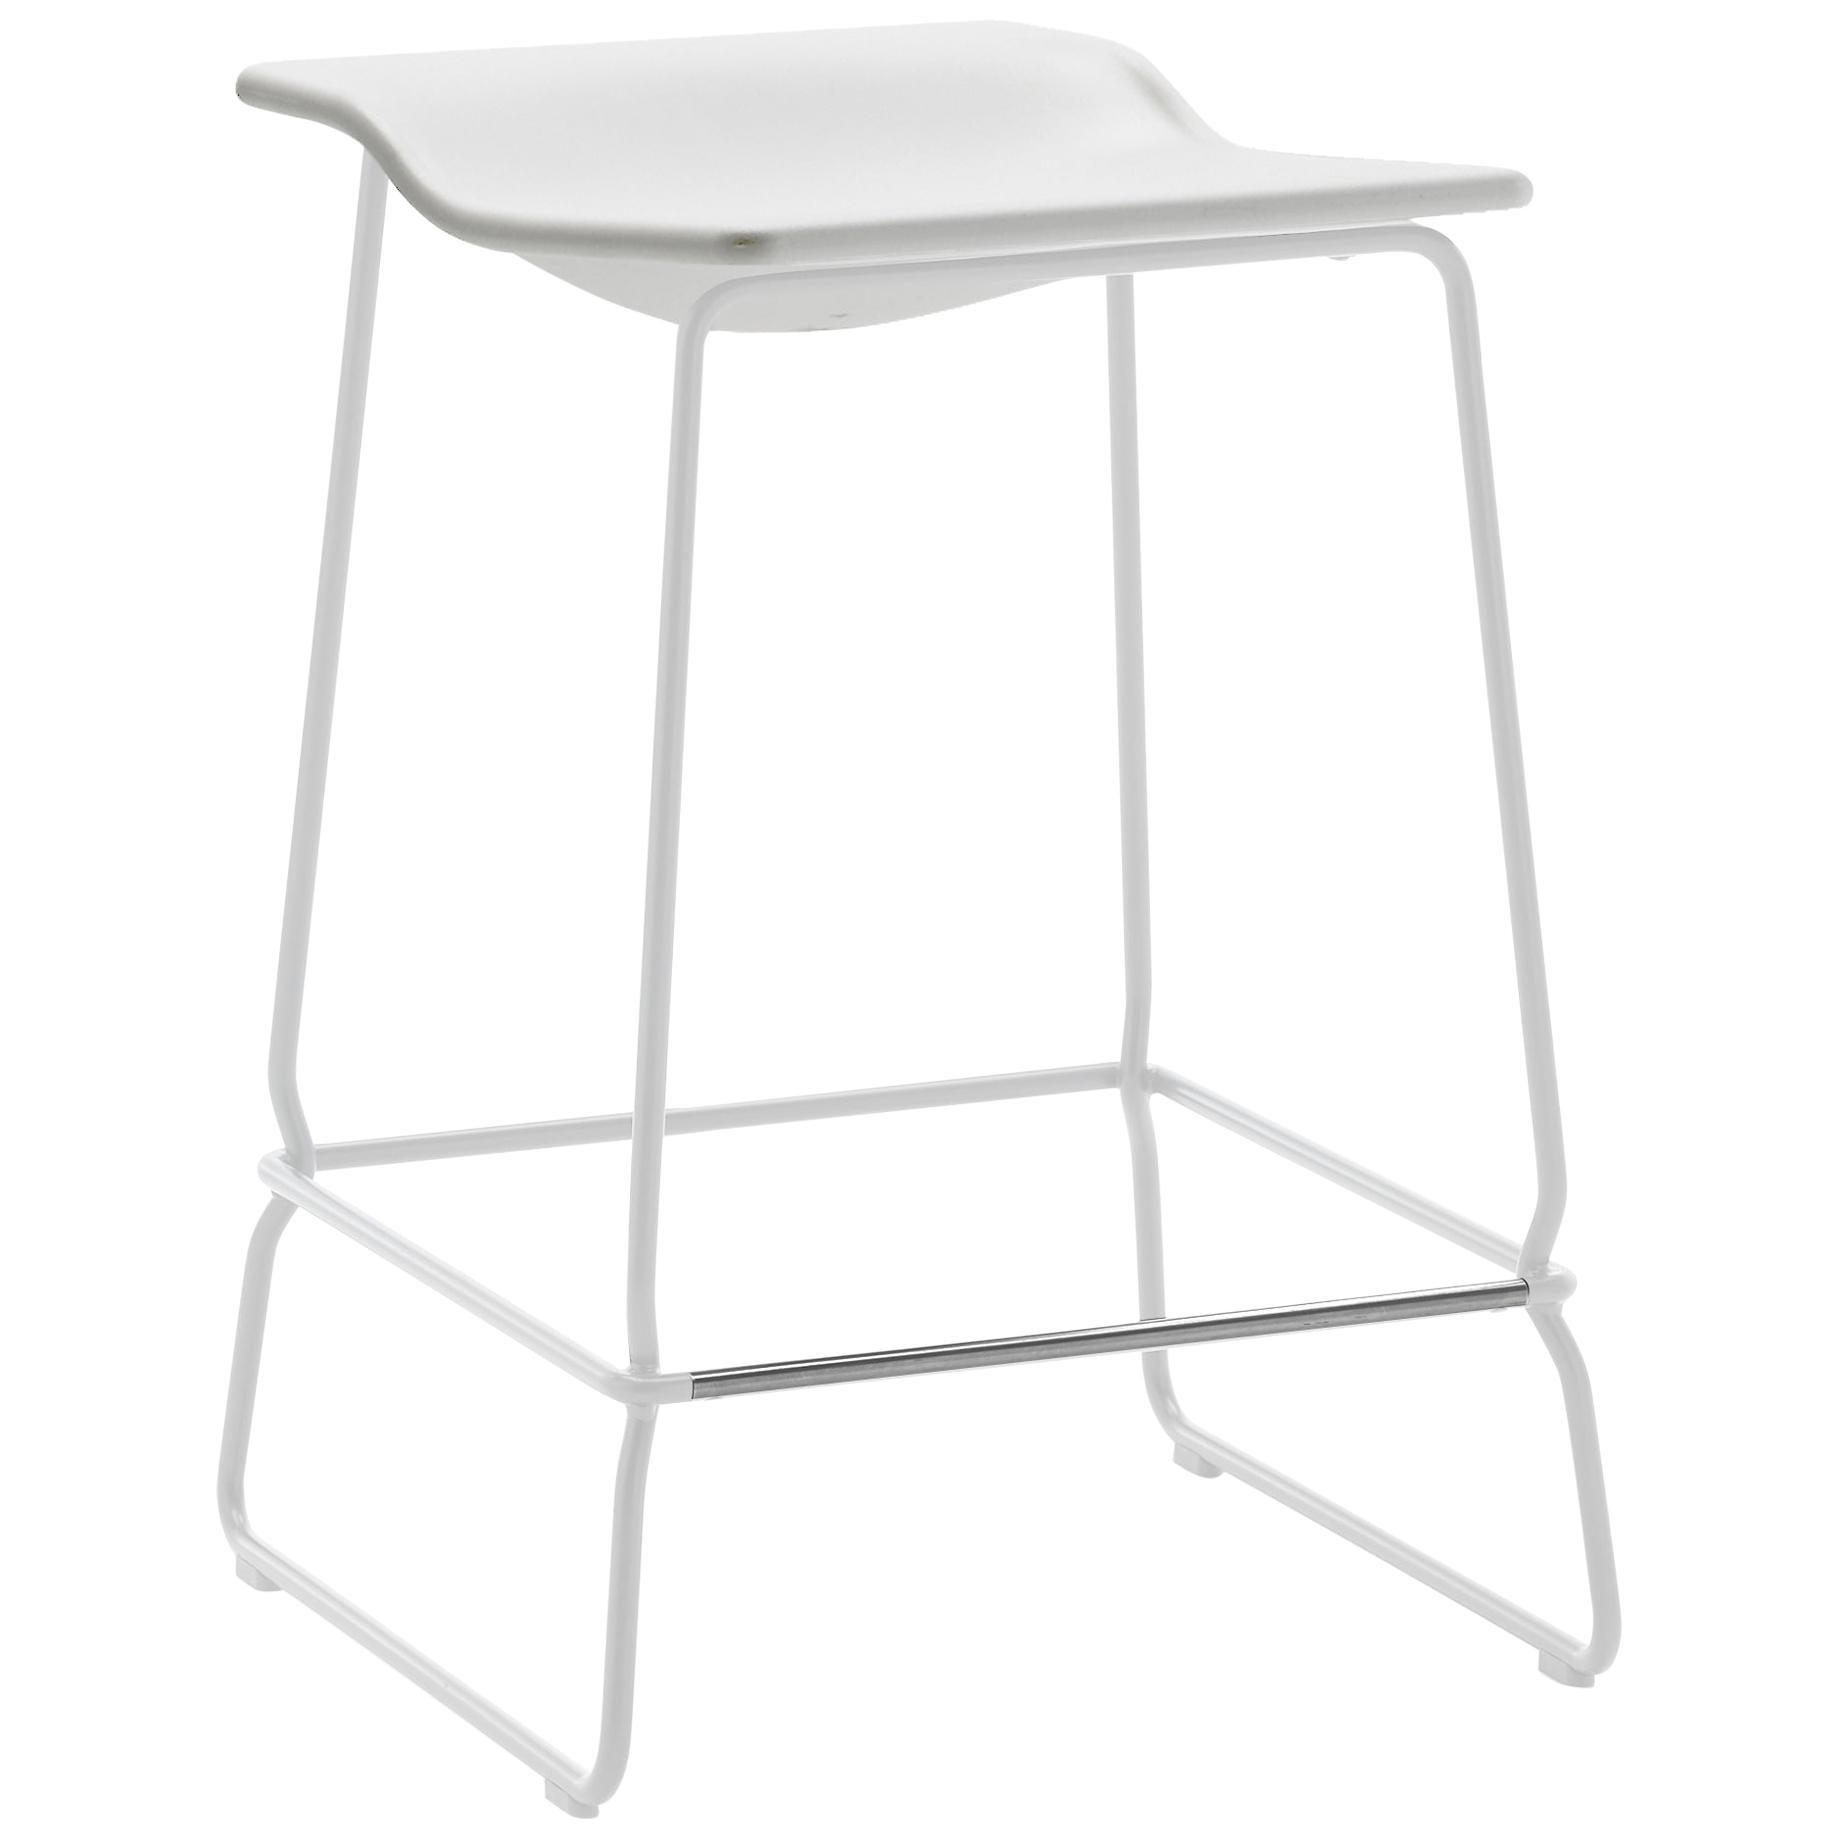 Viccarbe Last Minute Stool by Patricia Urquiola, White